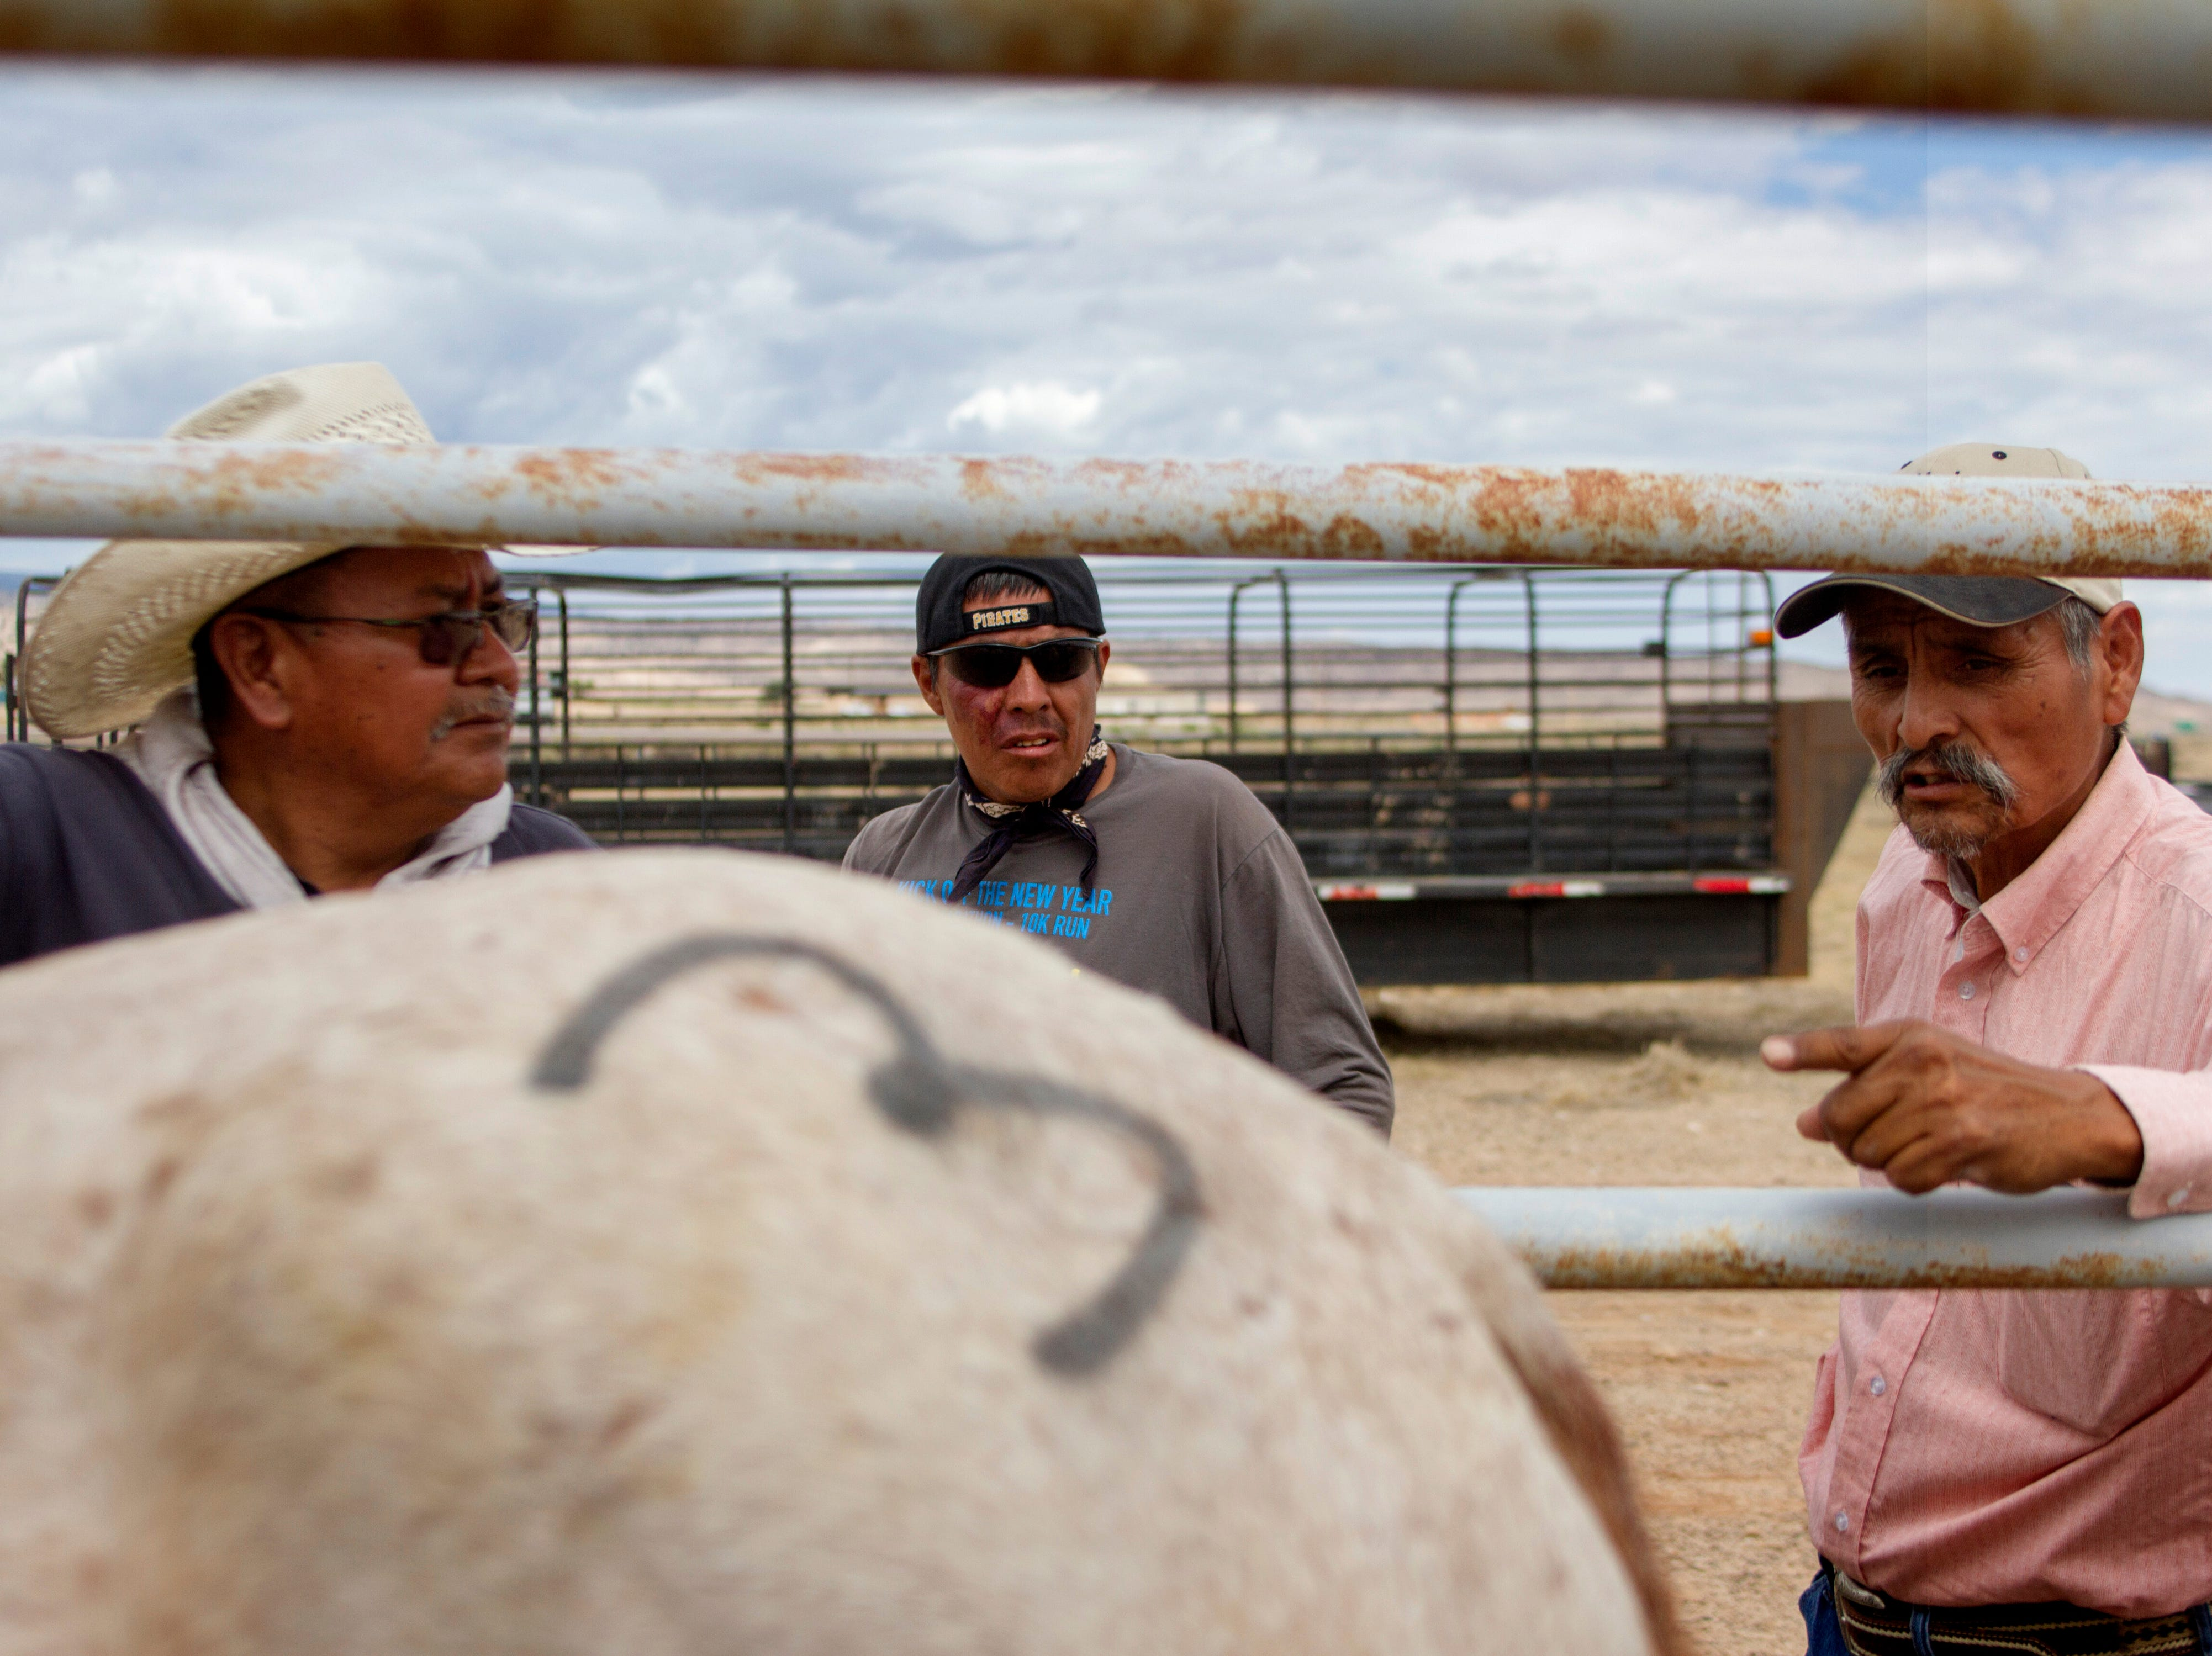 Arnoldo Curtis, an employee with the Navajo Nation Department of Agriculture, center, and Larry Tsosie, right, a district grazing chair person with the Navajo Nation Department of Agriculture look over a surrendered horse, as it's processed, Friday, August 3, 2018 as horses are processed at the auction yard in Naschitti.